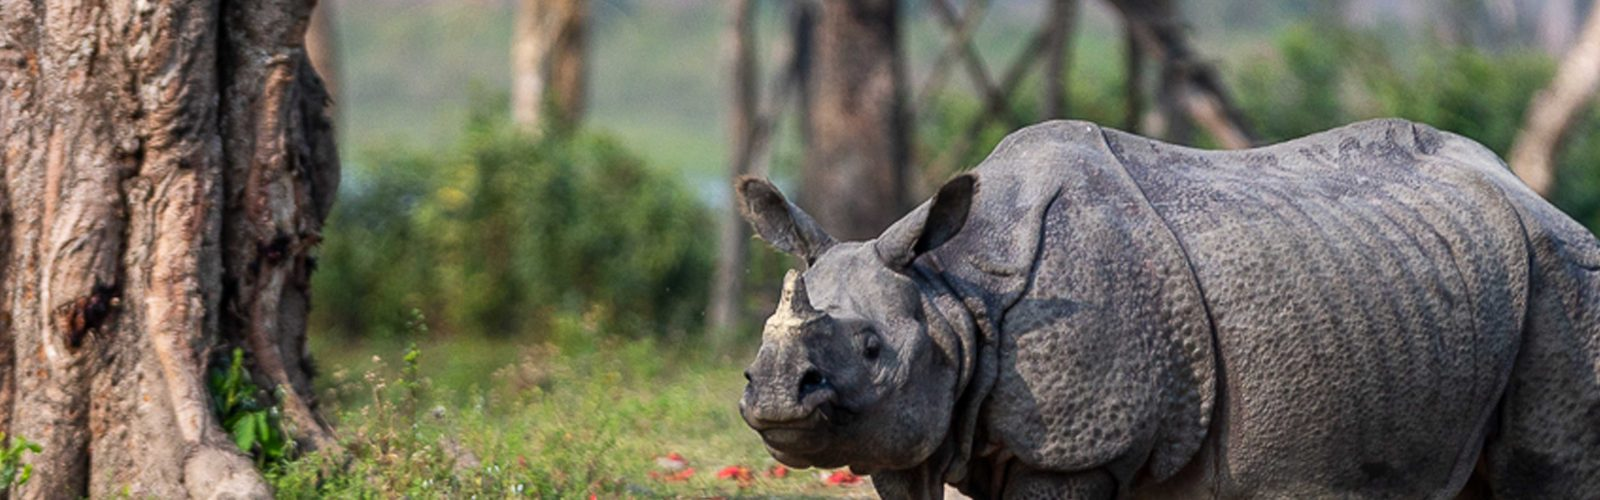 indian rhino photographed by matt armstrong-ford